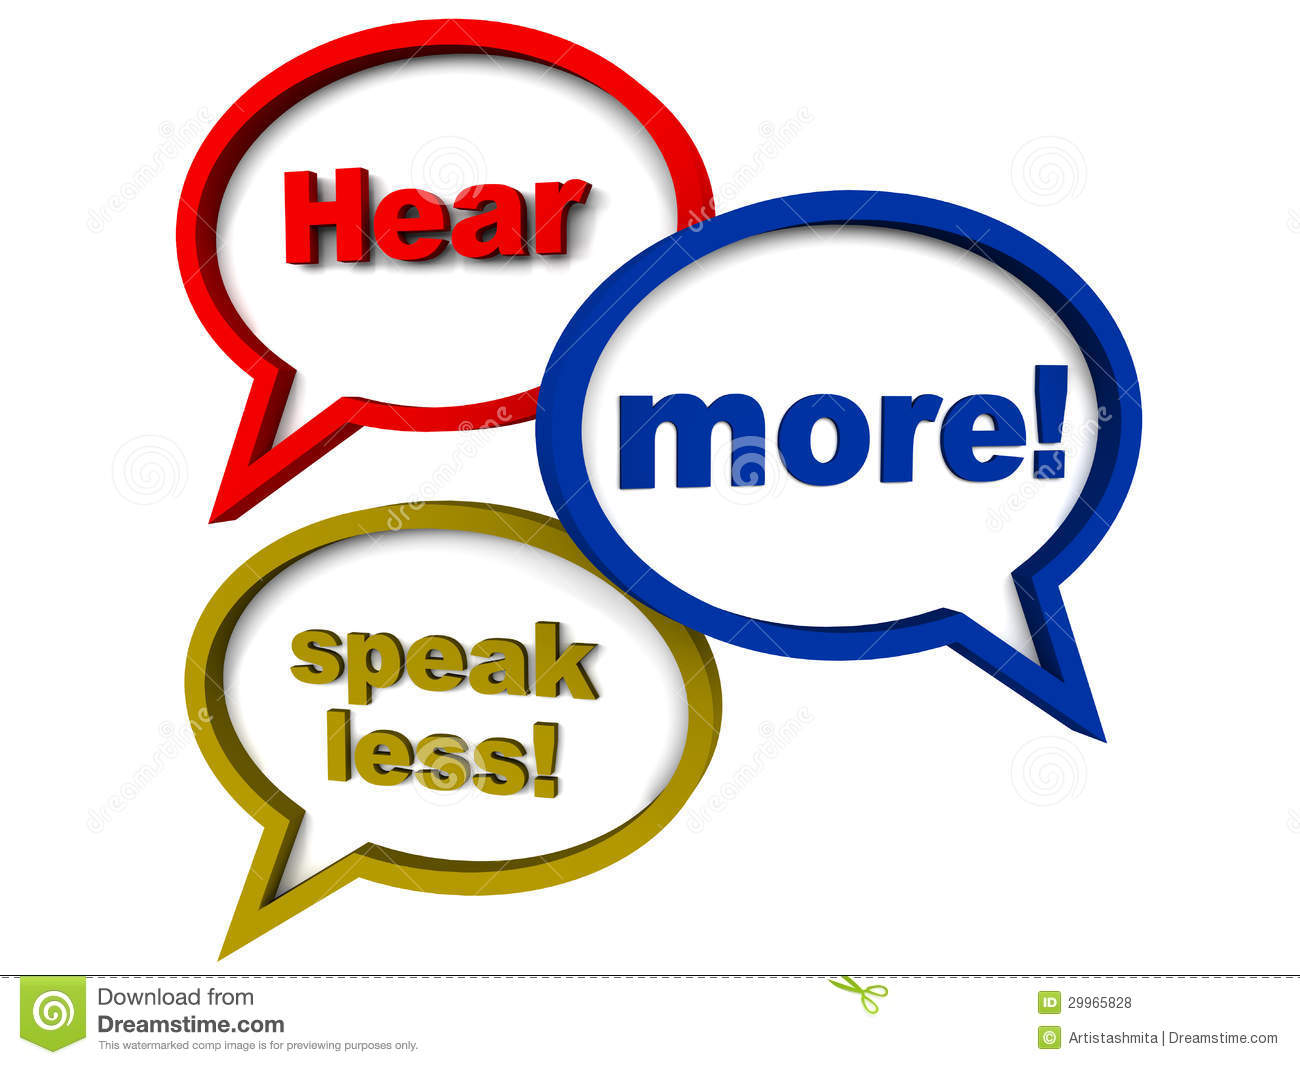 Clipart listening skills picture freeuse download Listening skills clipart 3 » Clipart Station picture freeuse download